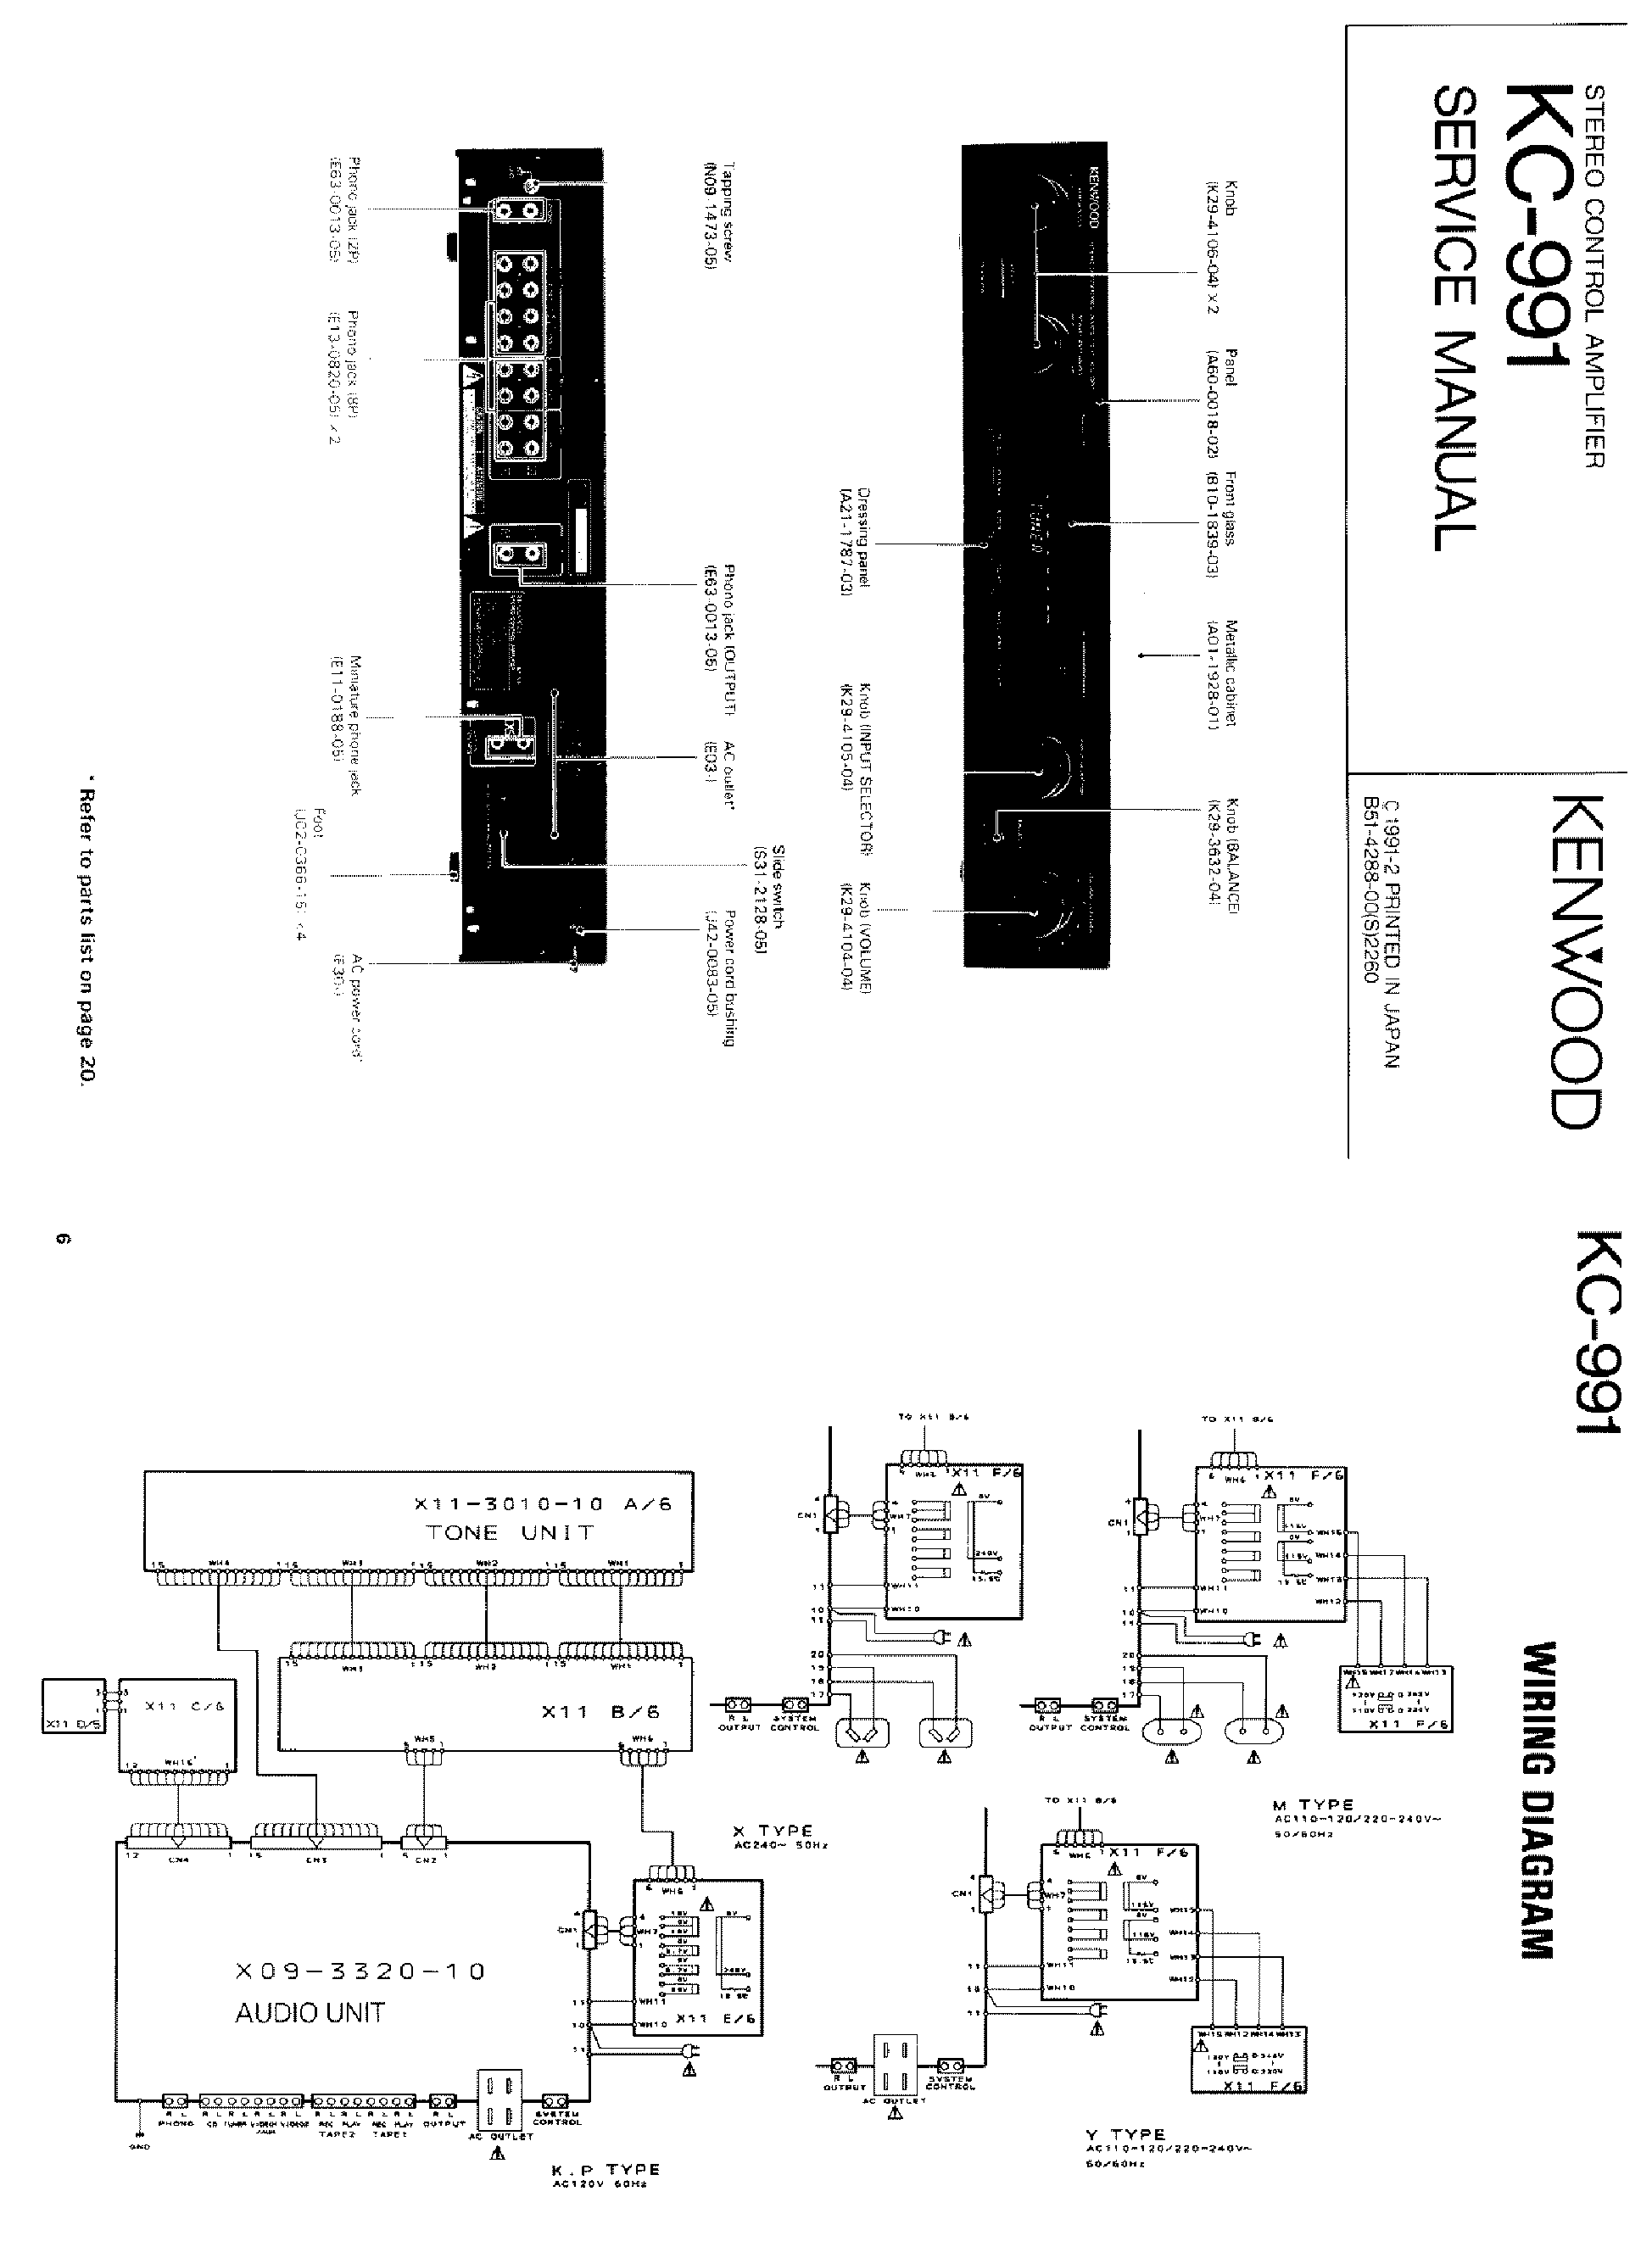 Kenwood Kc 991 Sch Service Manual Download Schematics